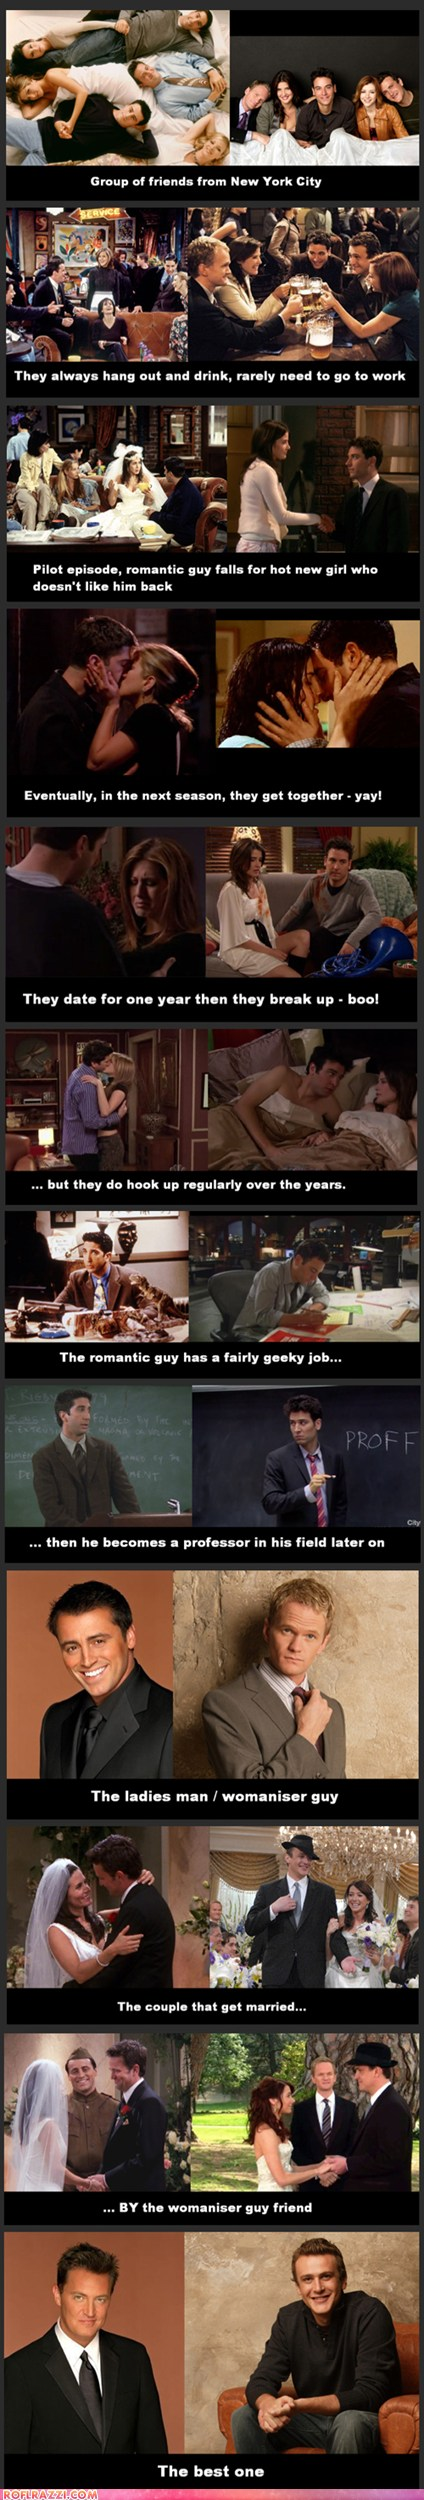 Friends vs How I Met Your Mother    Kinda awesome! But I don't agree with the most awesome of HIMYM. I love Barney the most! :D